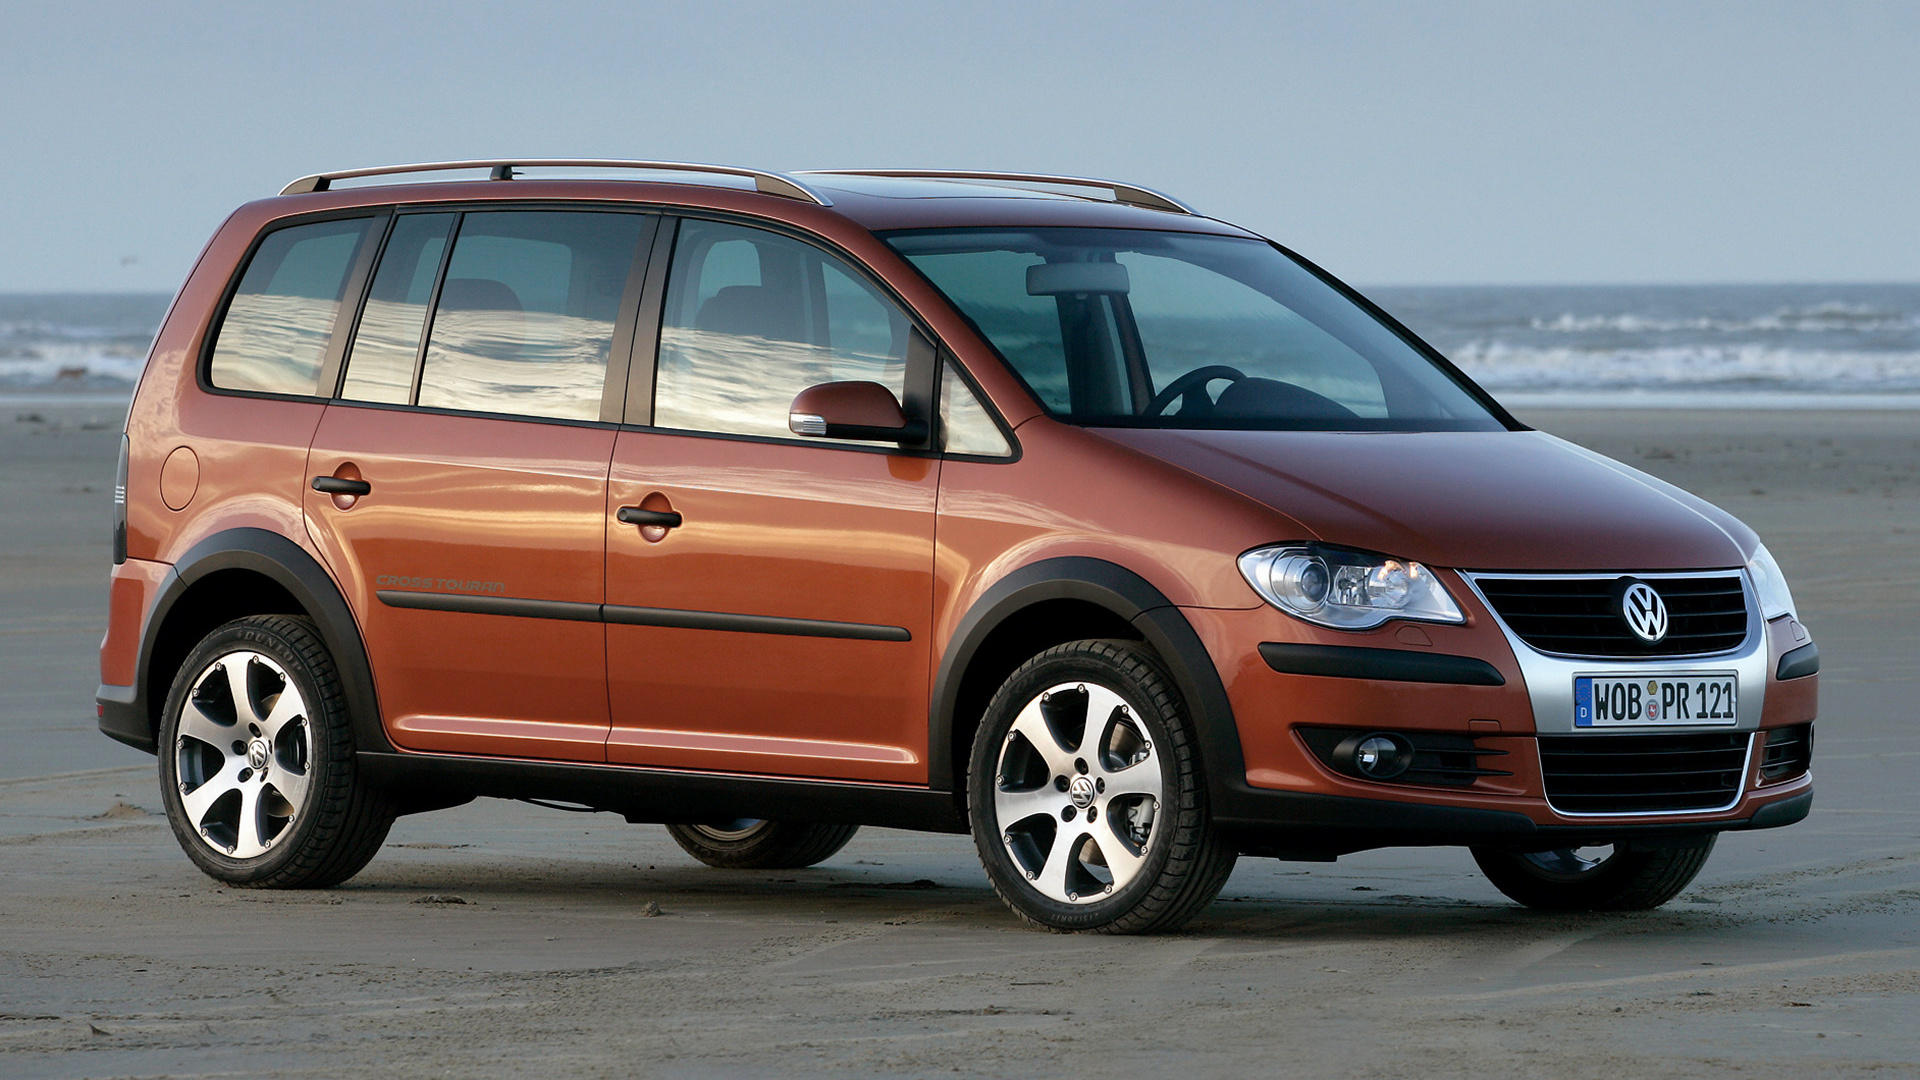 volkswagen cross touran 2007 wallpapers and hd images. Black Bedroom Furniture Sets. Home Design Ideas